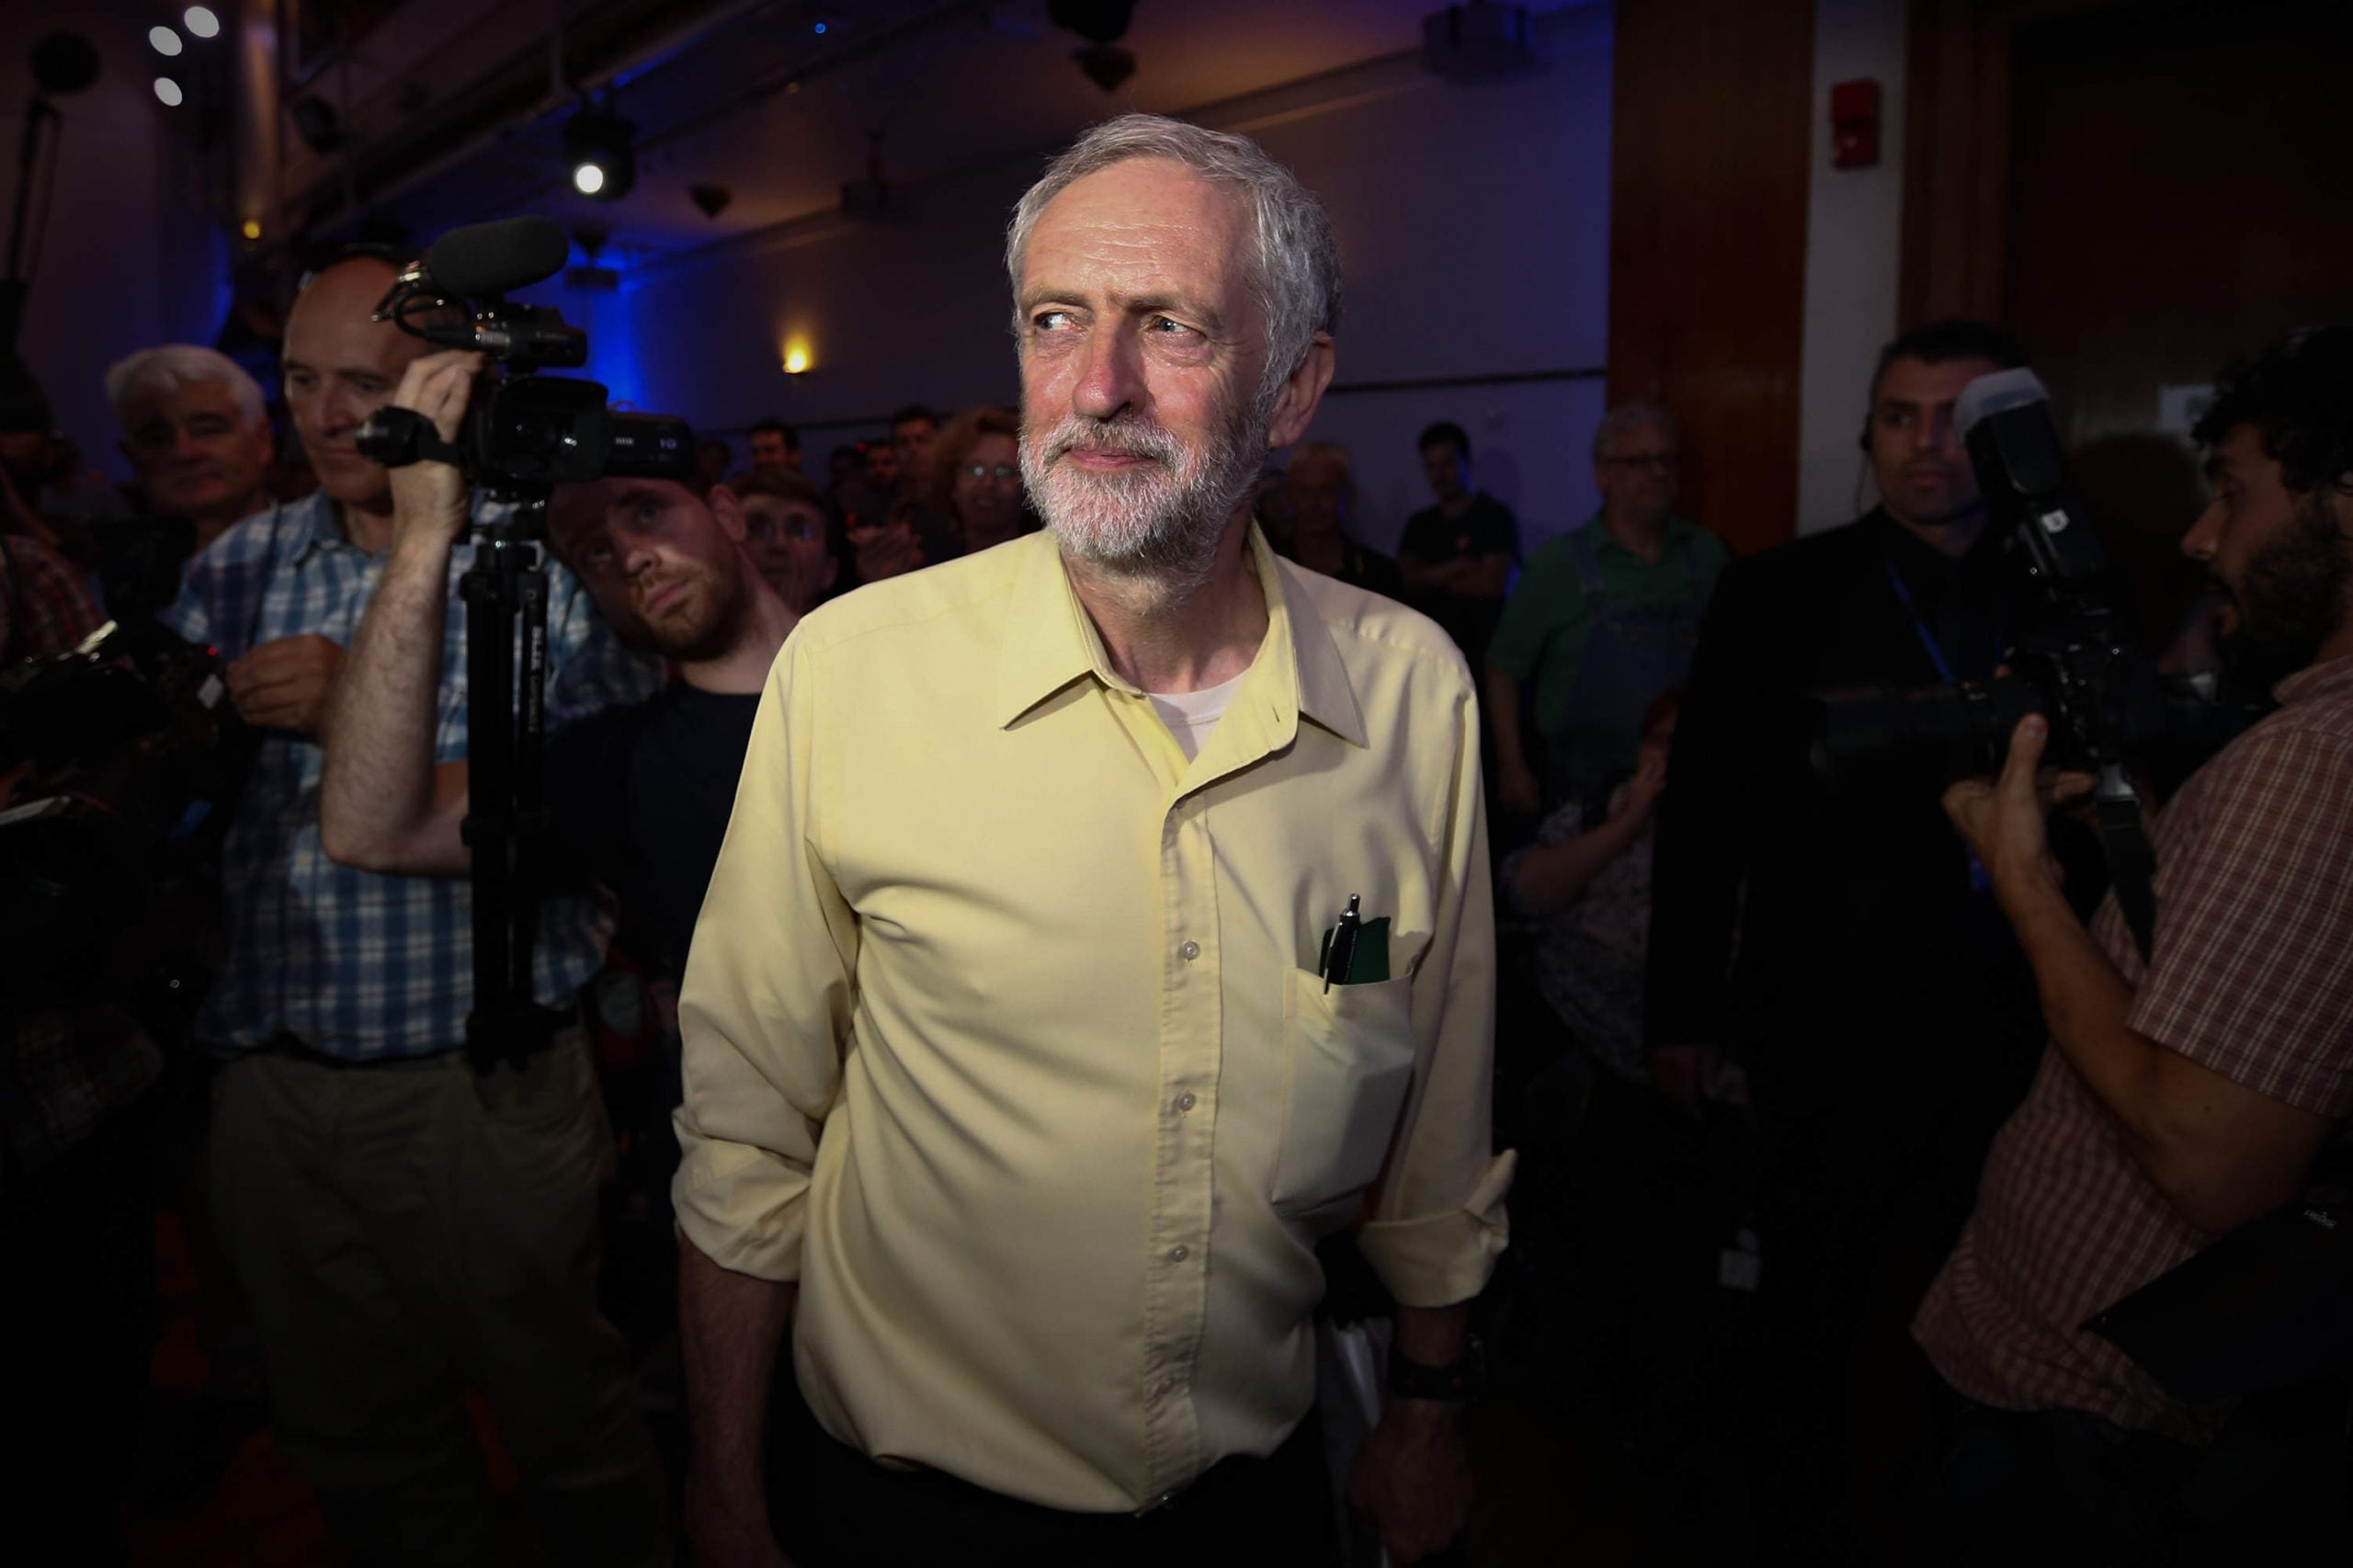 No, Jeremy Corbyn is not antisemitic – but the left should be wary of who he calls friends